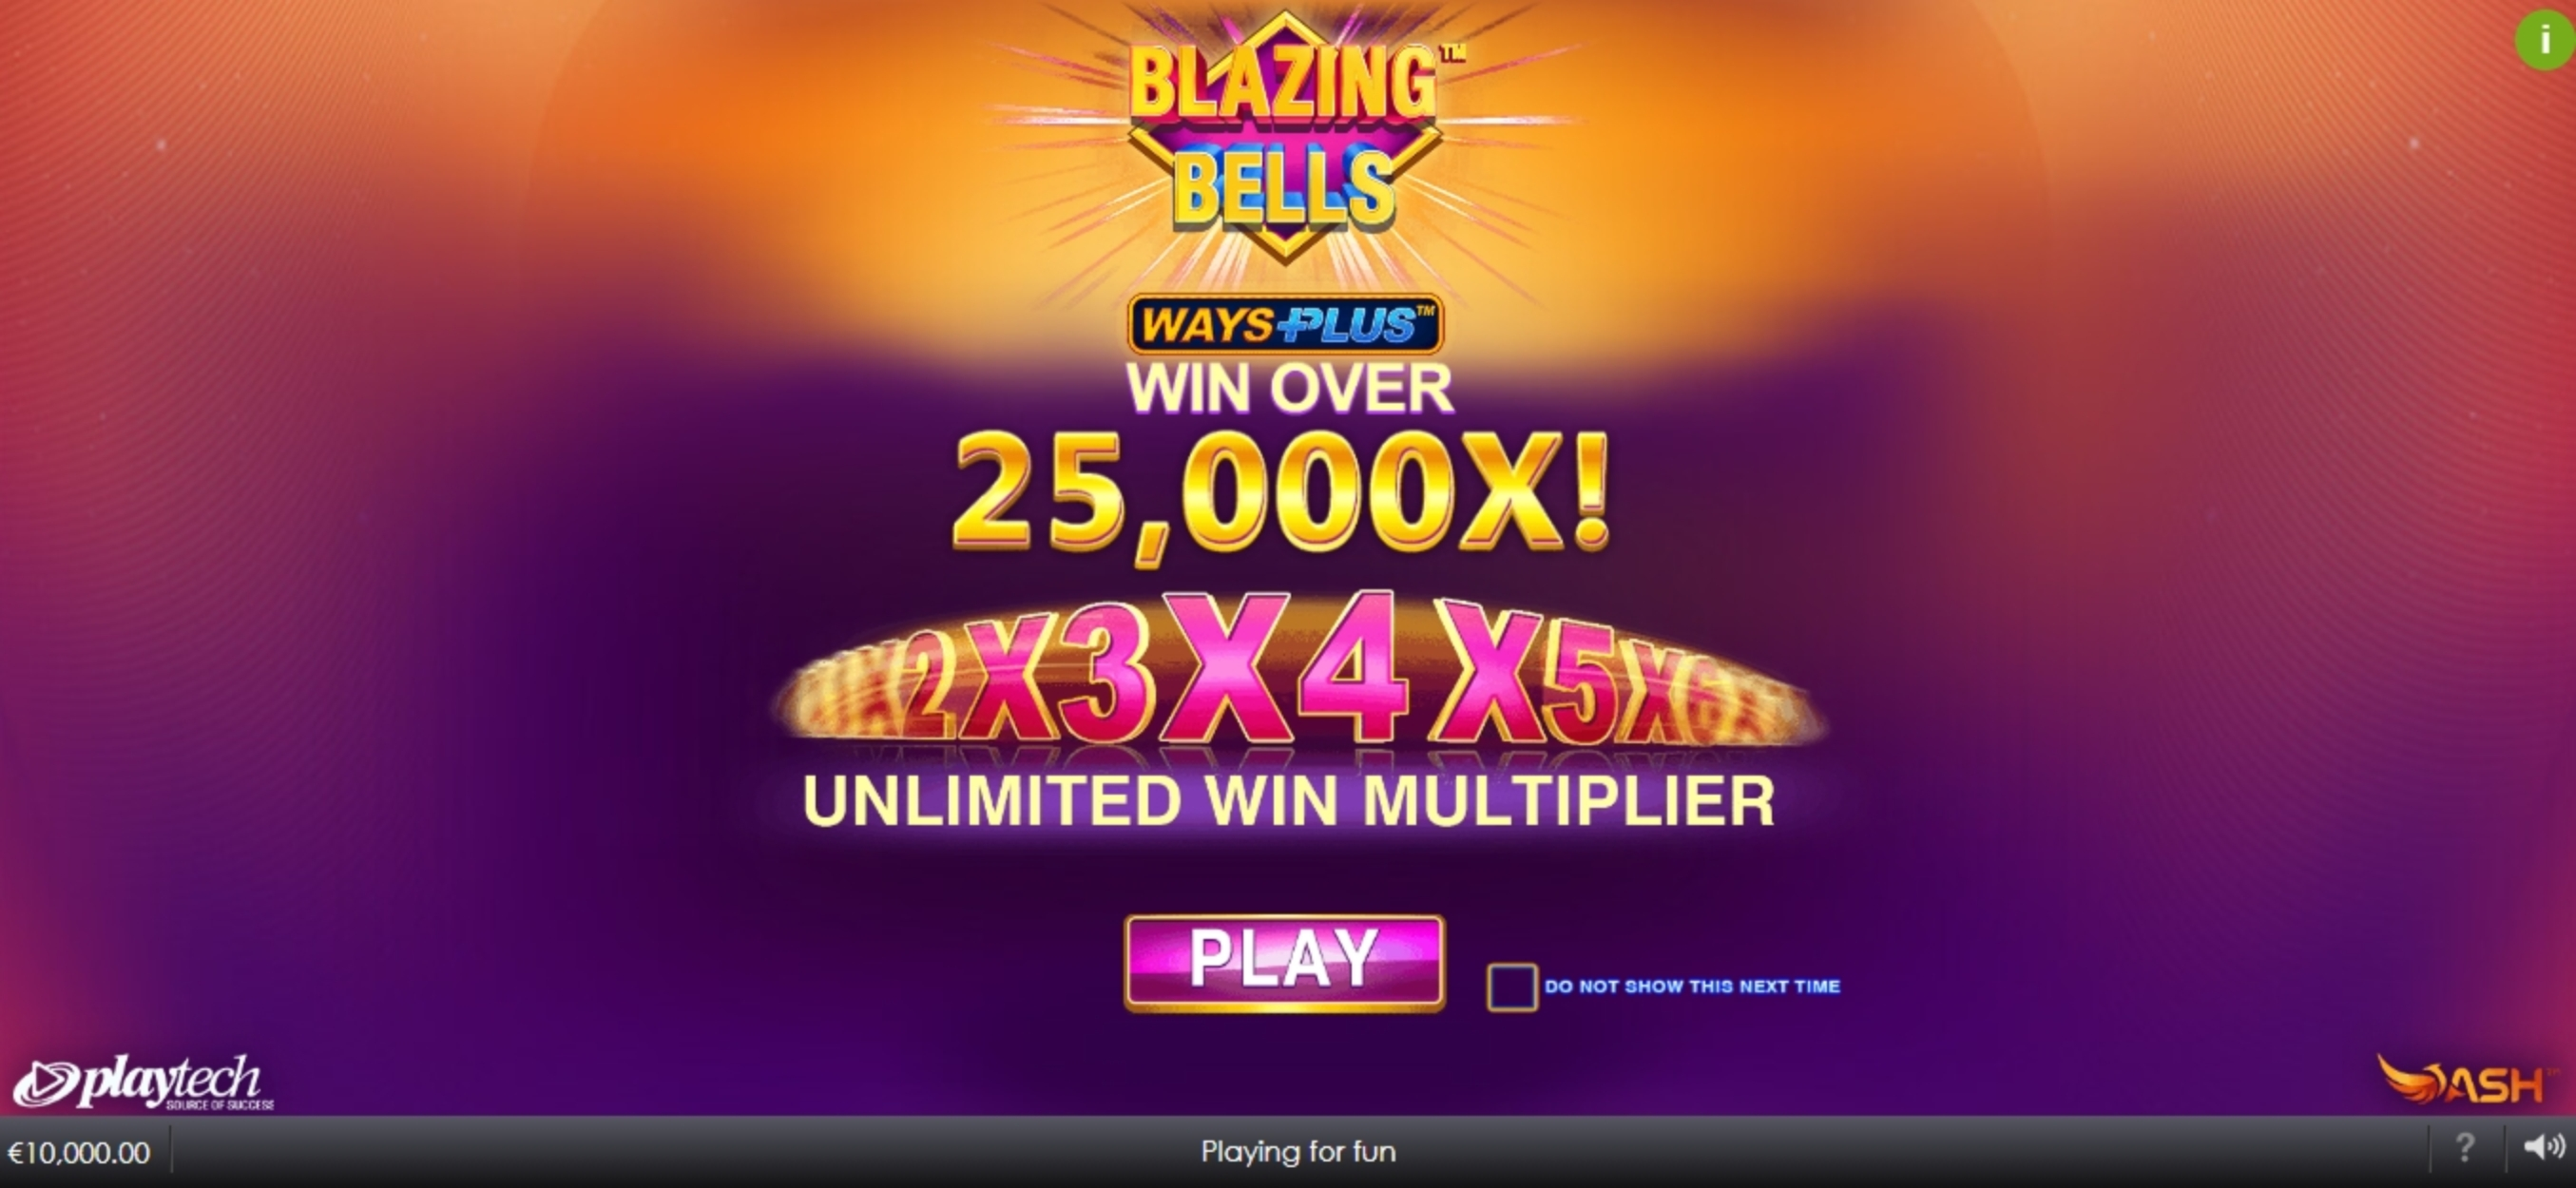 Play Blazing Bells Free Casino Slot Game by Ash Gaming